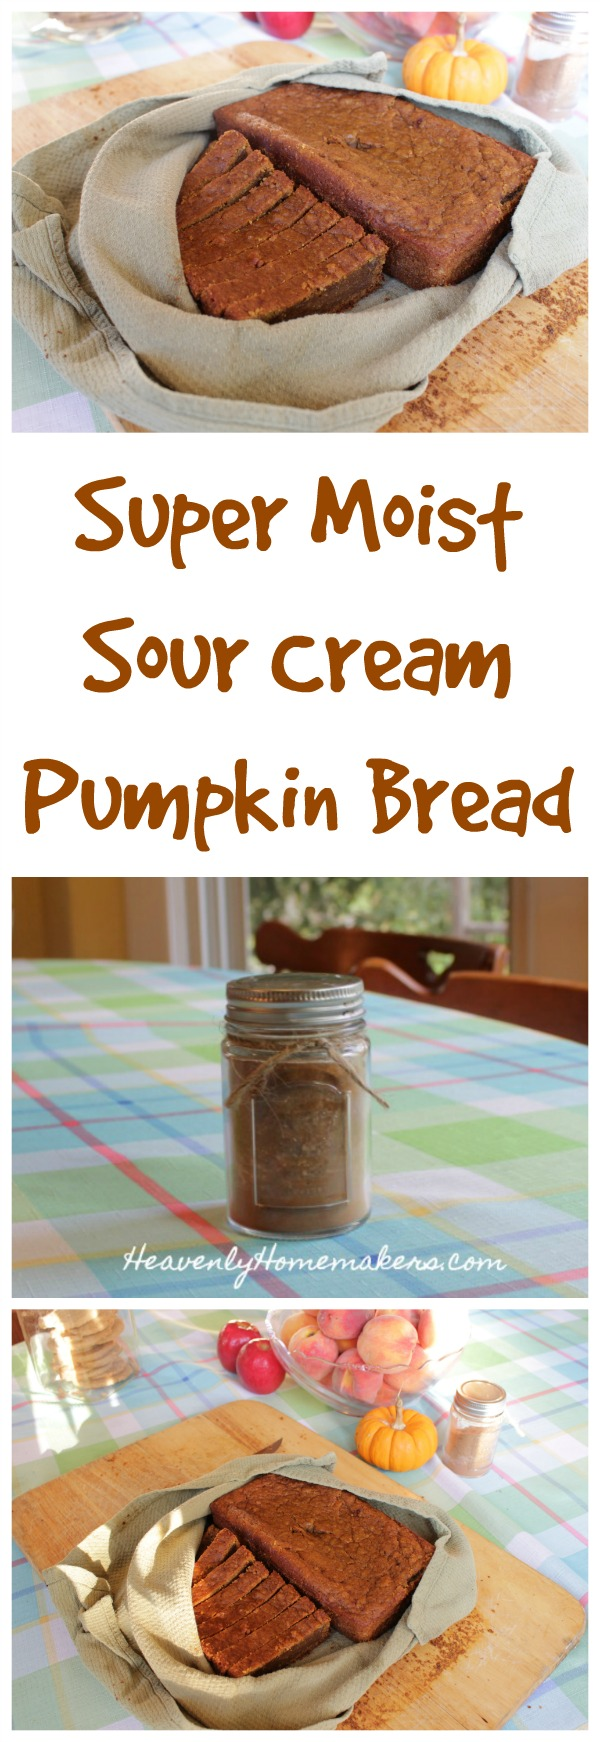 Super Moist Sour Cream Pumpkin Bread